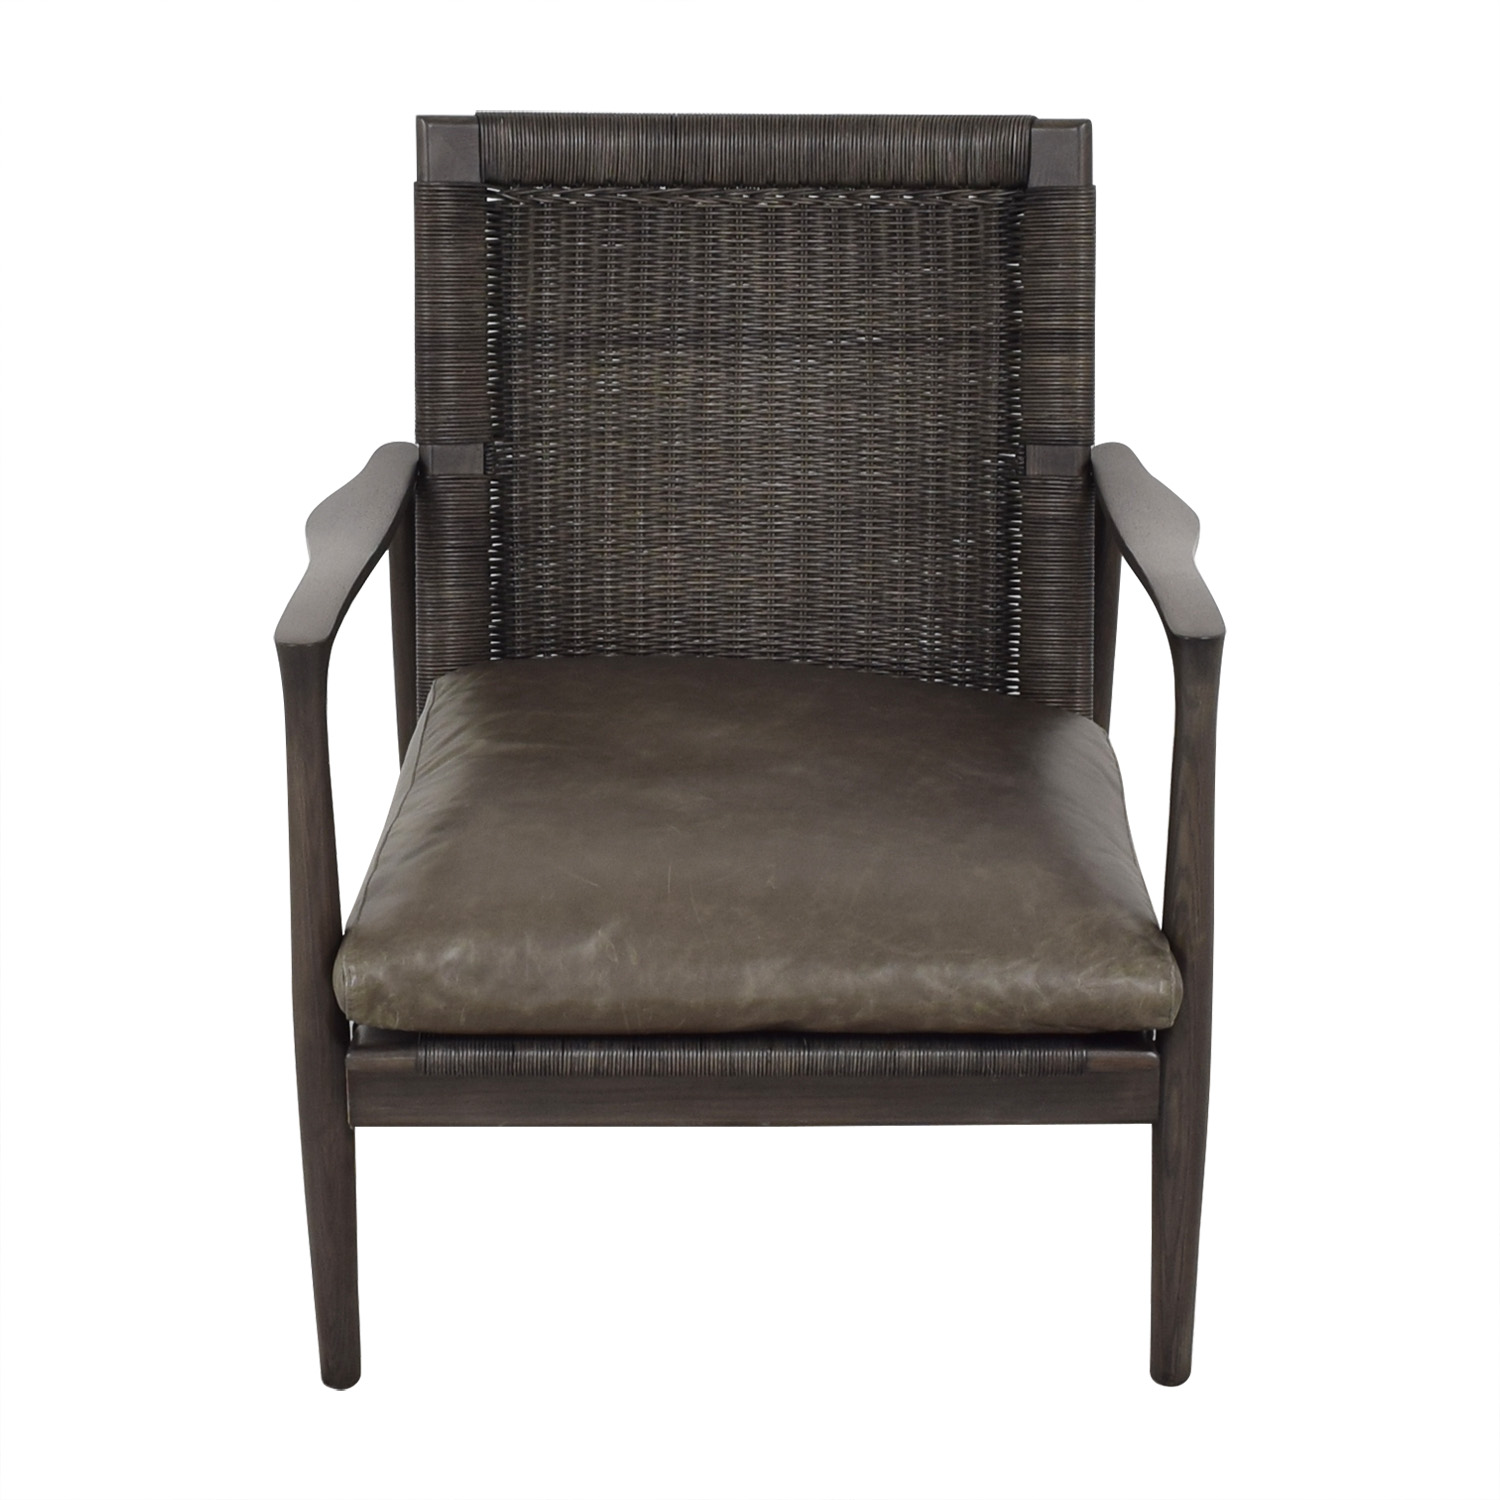 Crate & Barrel Crate & Barrel Sebago Midcentury Rattan Chair with Leather Cushion discount